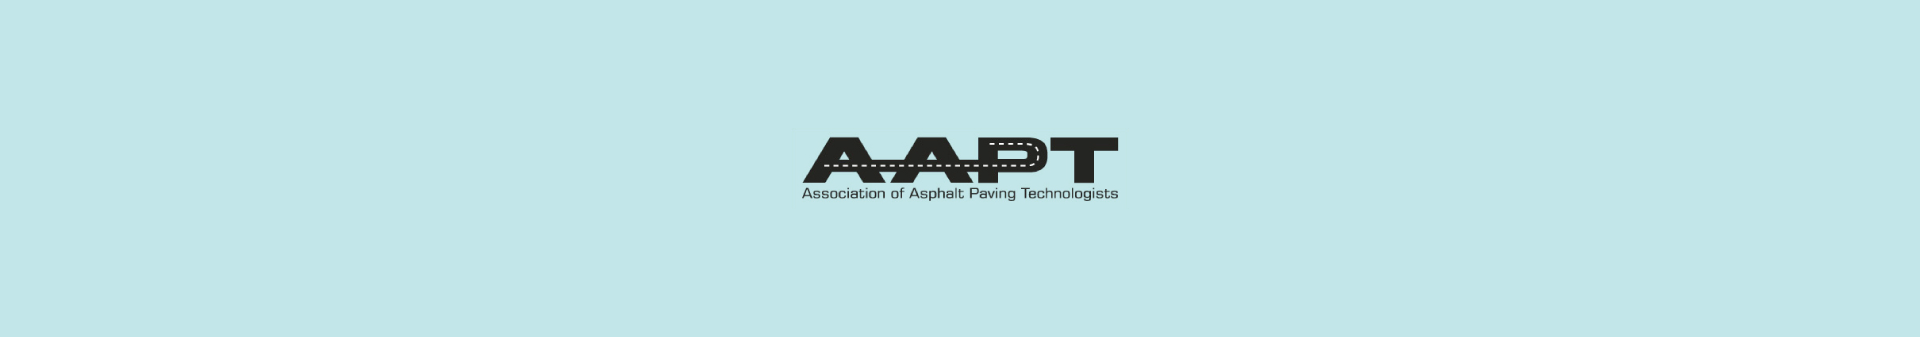 Association of Asphalt Paving Technologists (AAPT)